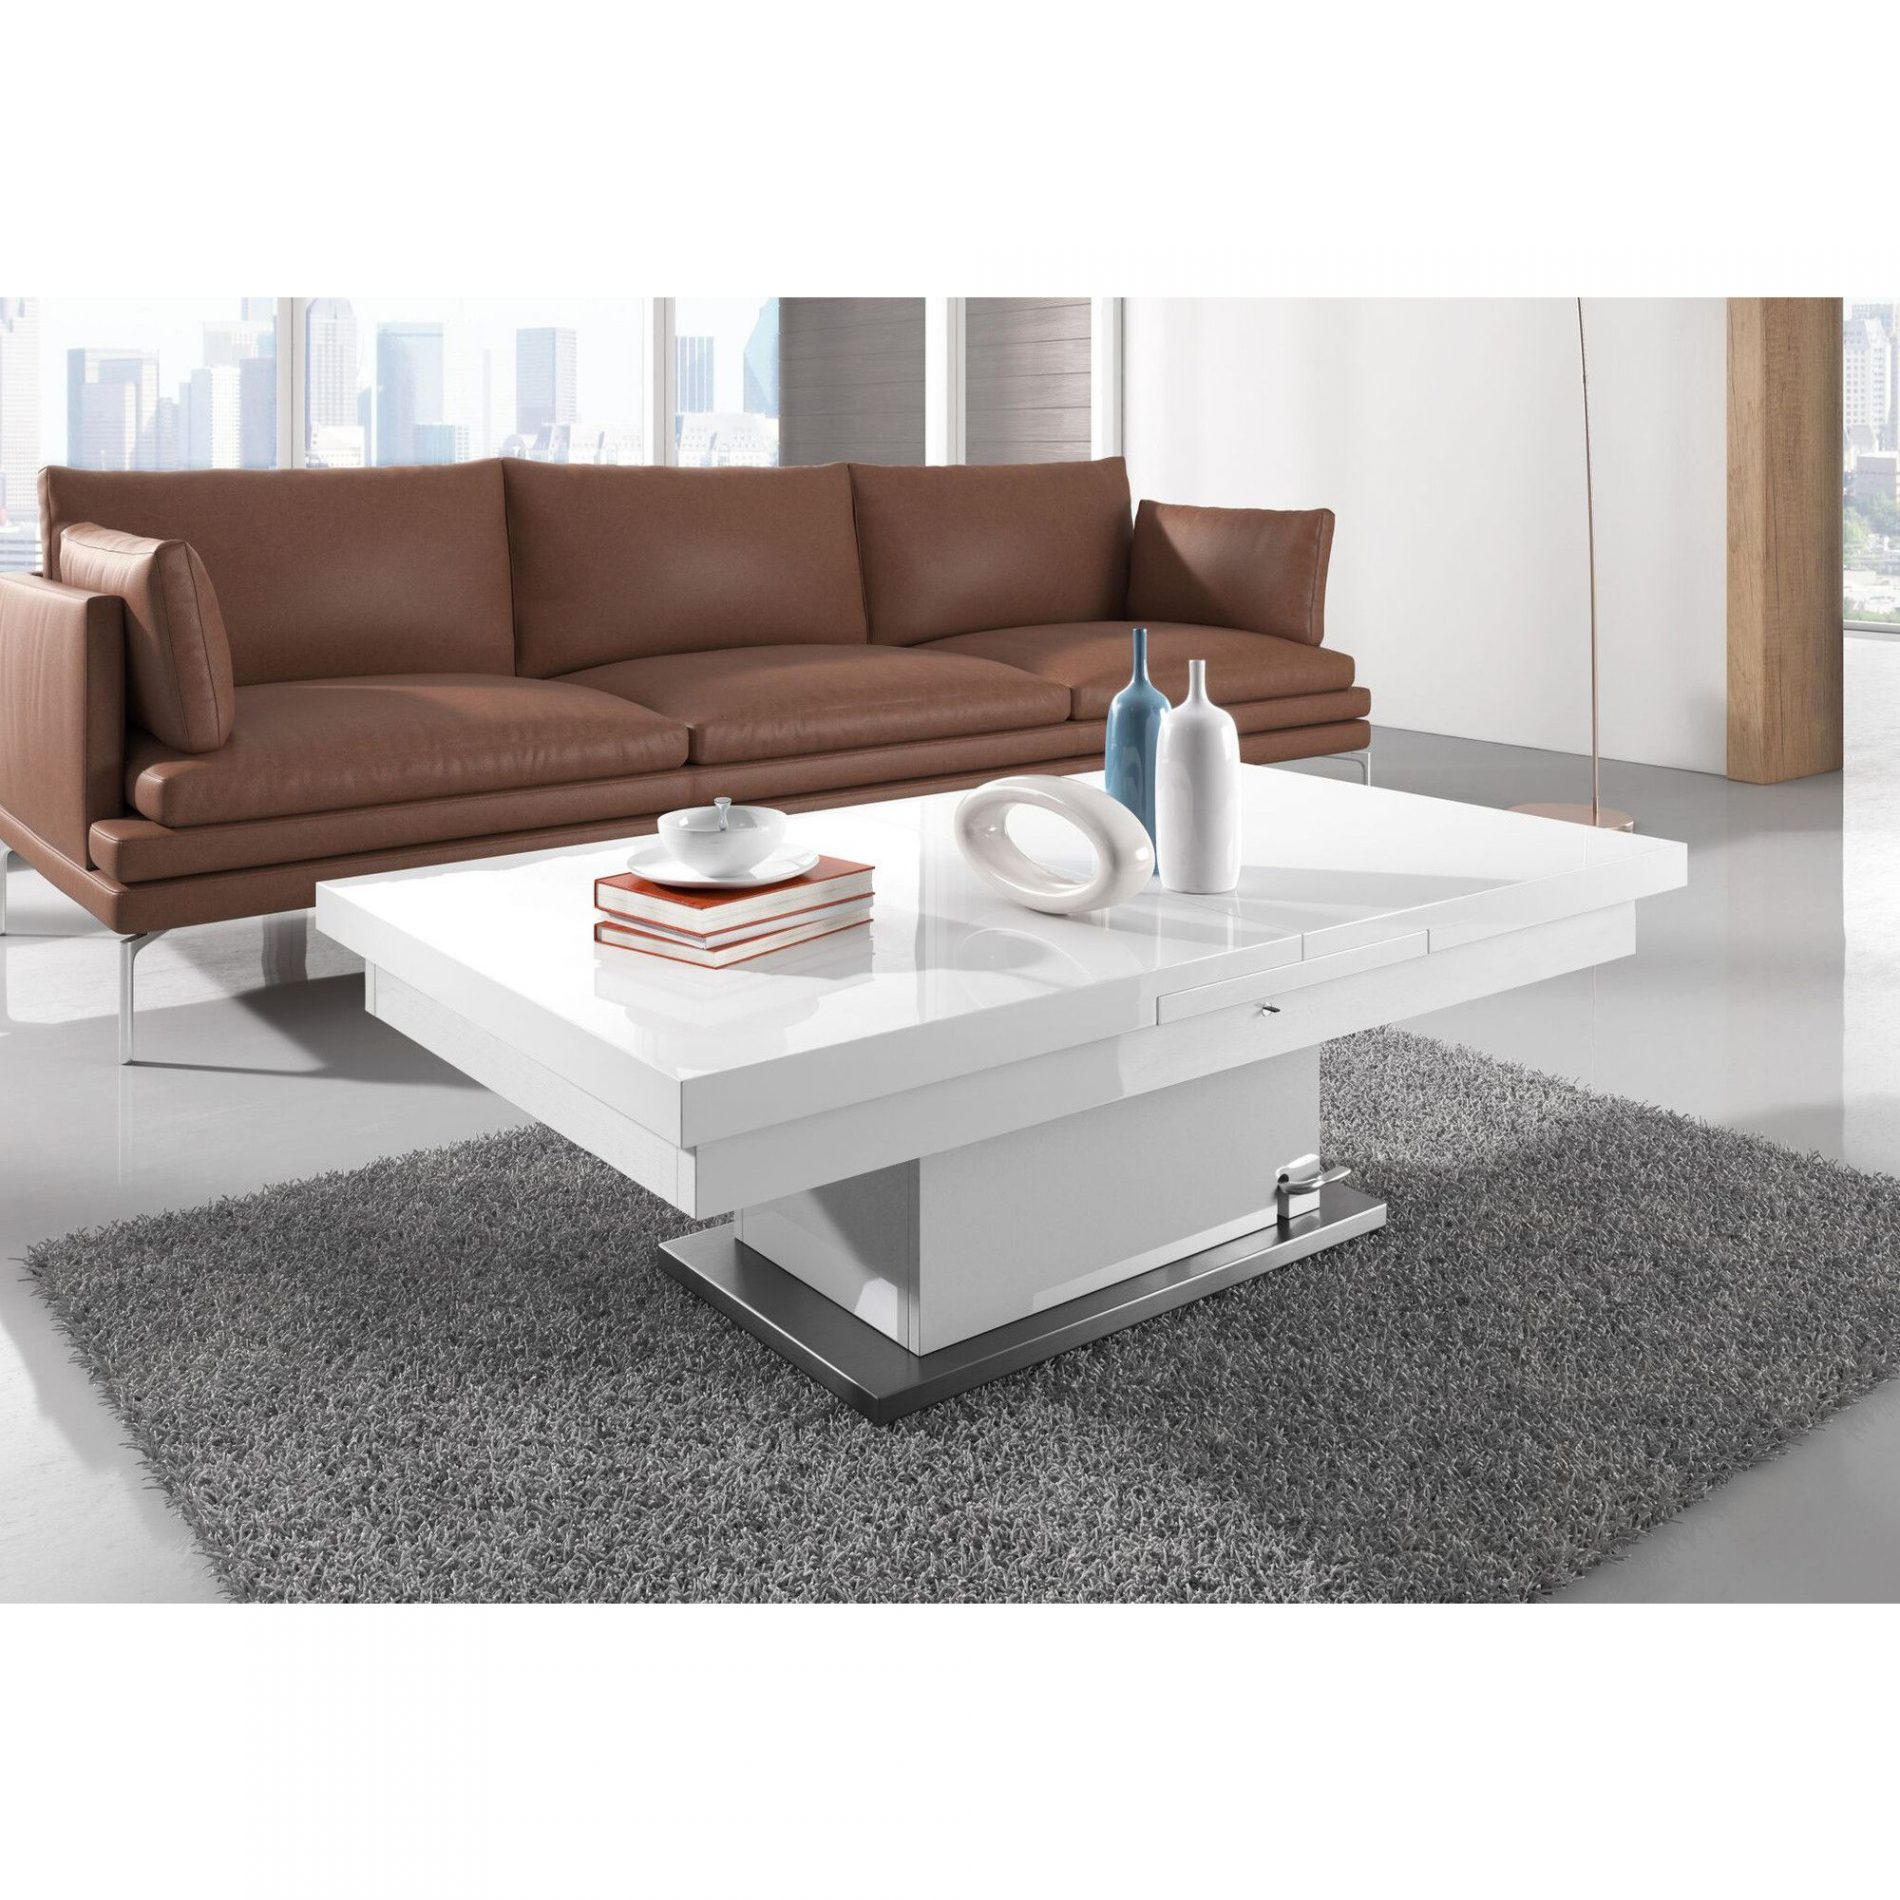 Why not make your home functional with coffee tables that convert into dining tables?